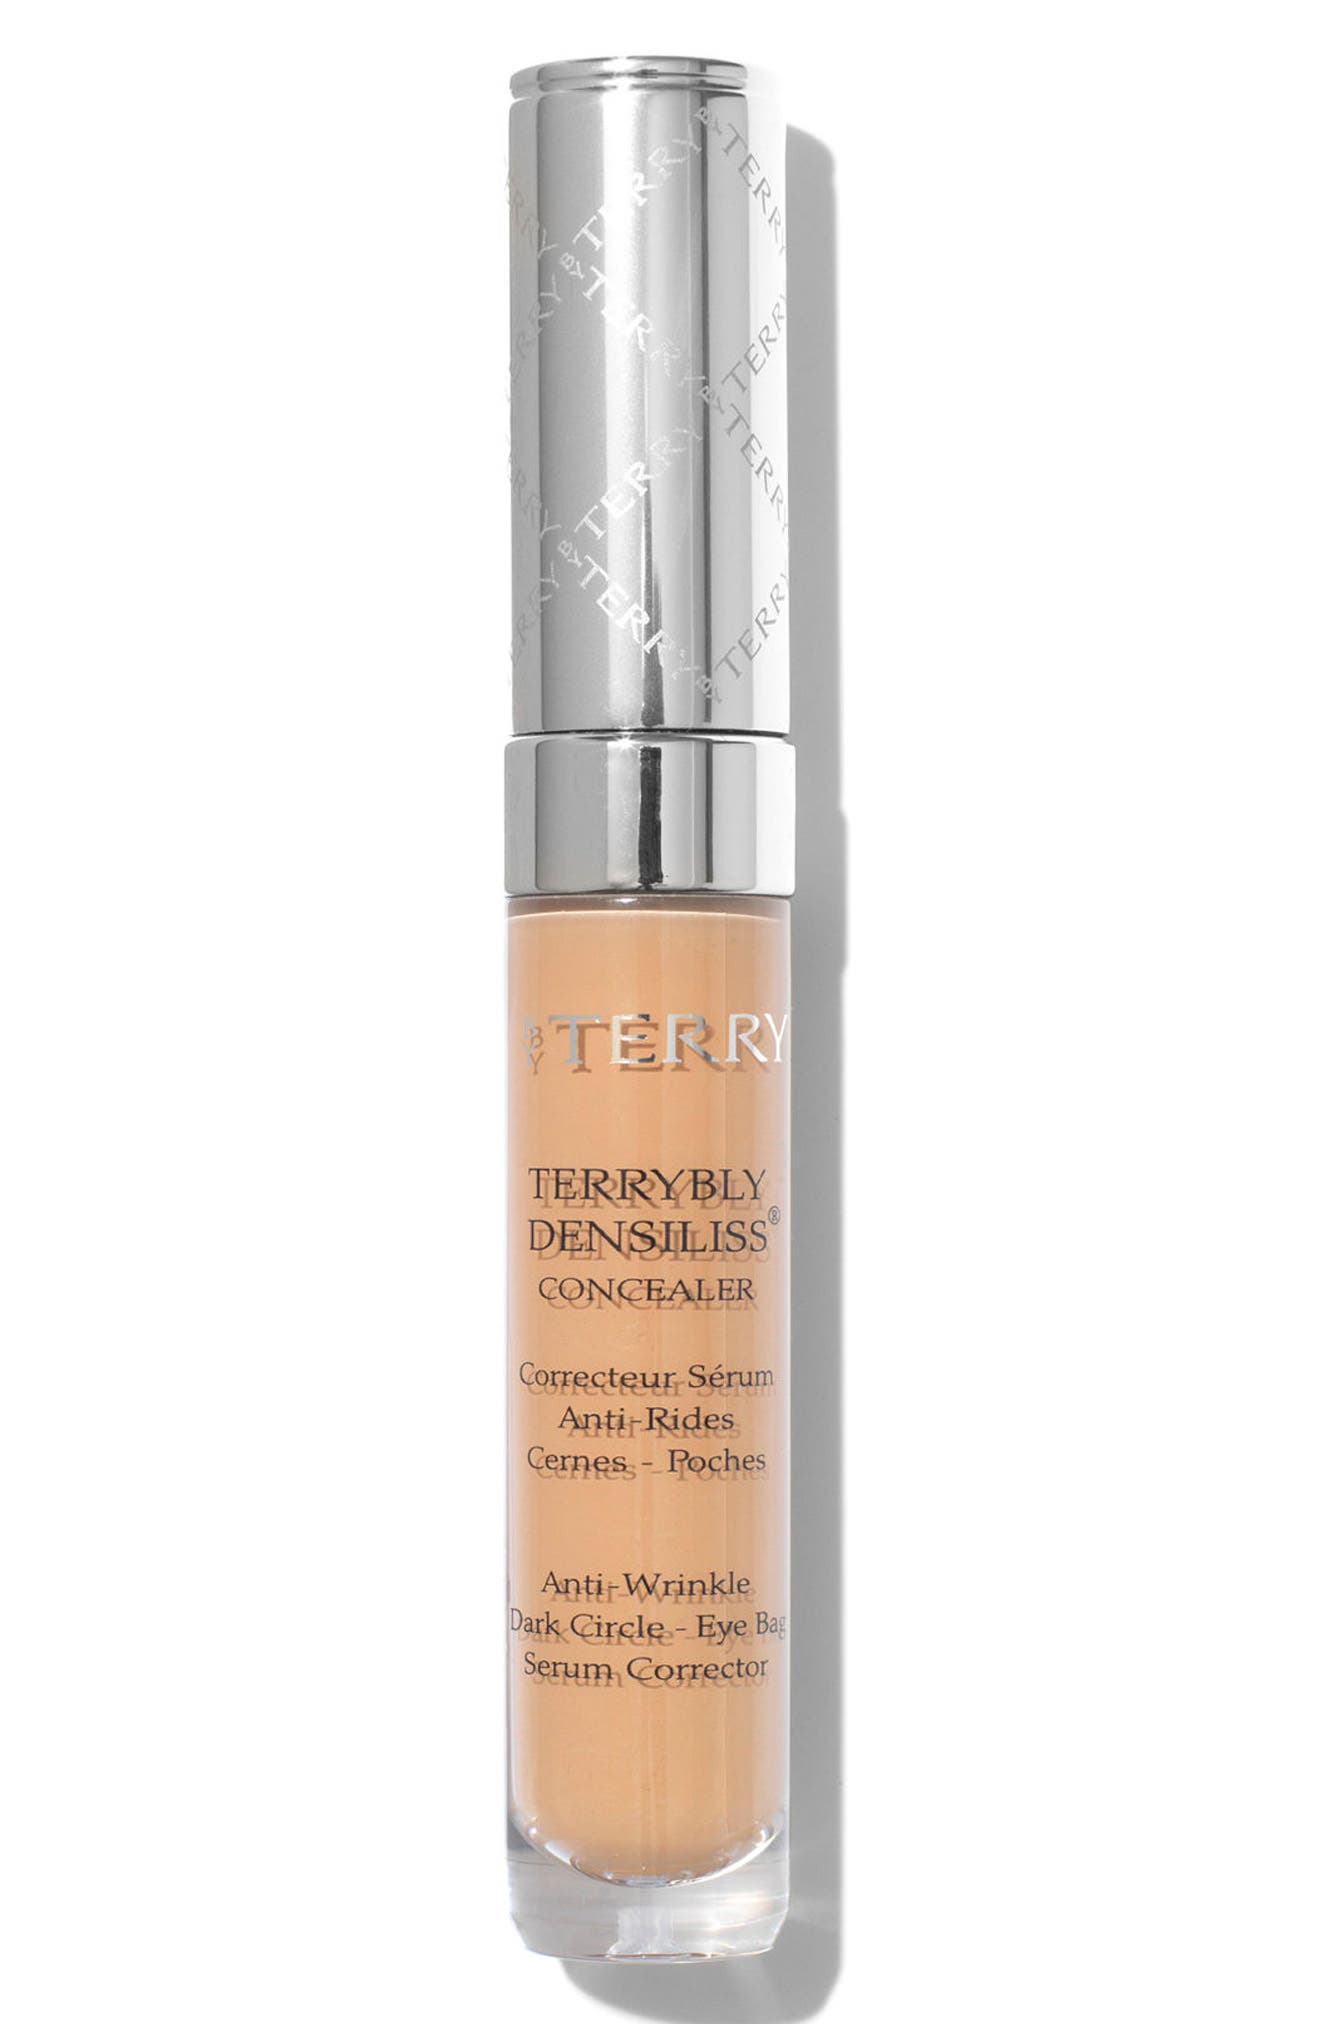 By Terry Terrybly Densiliss Concealer In 6 Sienna Coper